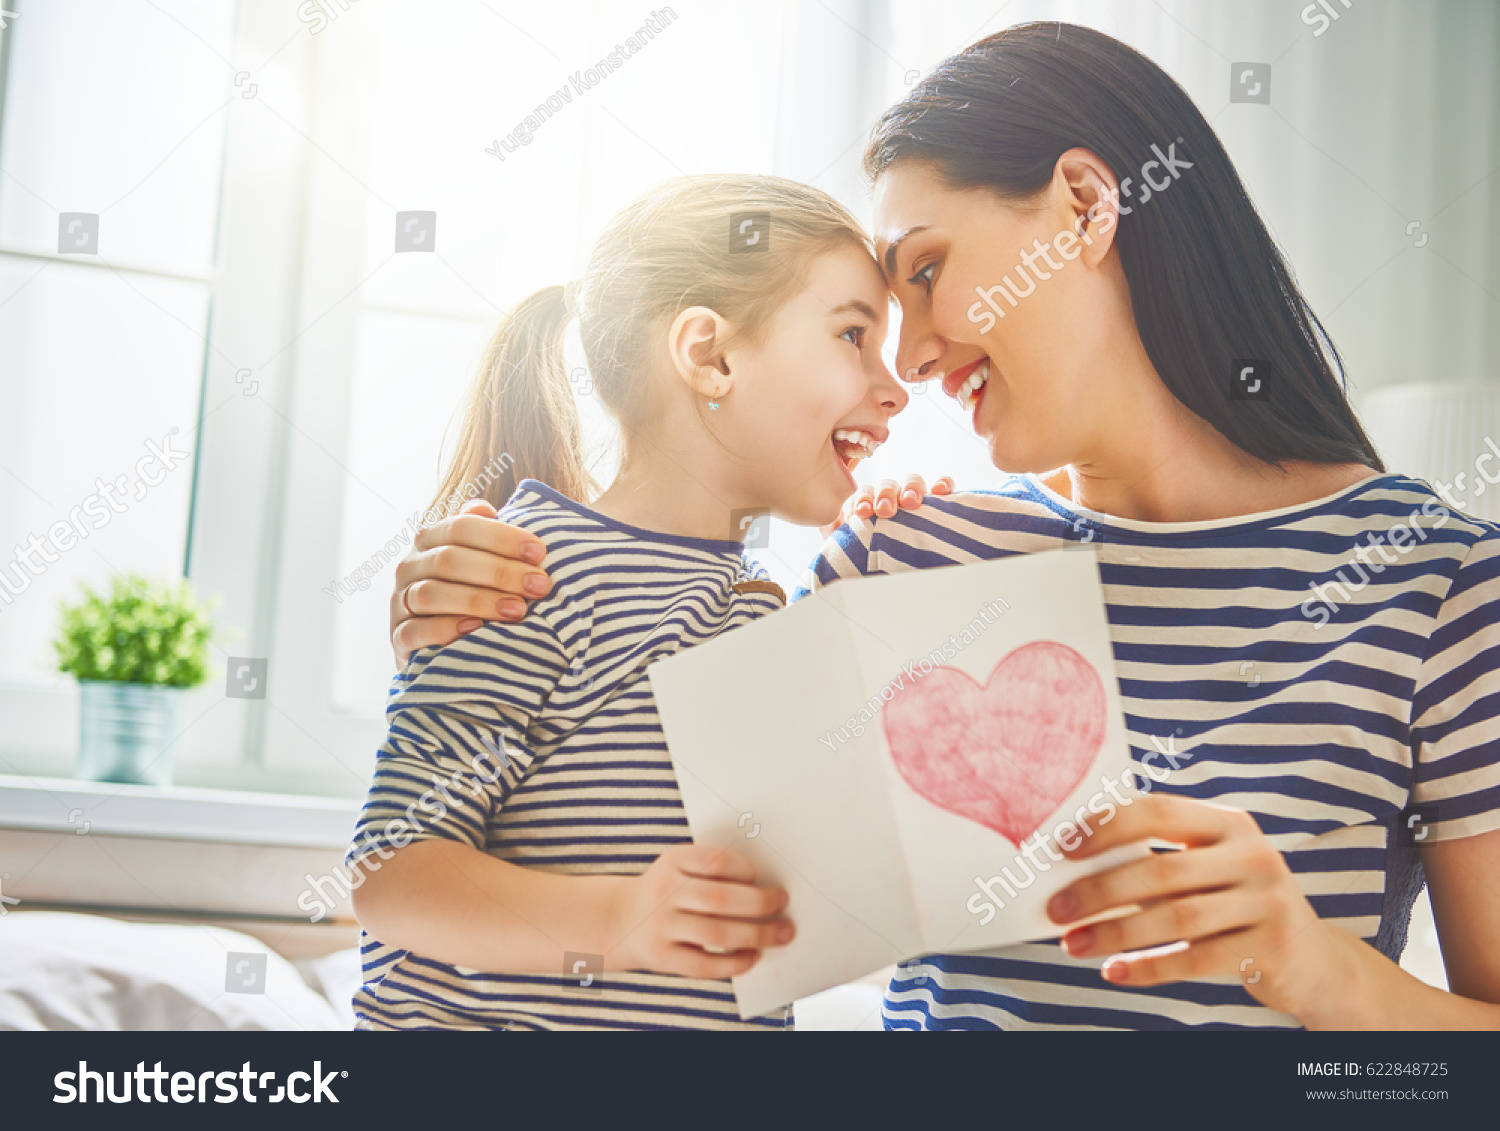 Happy mother's day! Child daughter congratulates mom and gives her postcard. Mum and girl smiling and hugging. Family holiday and togetherness. #622848725